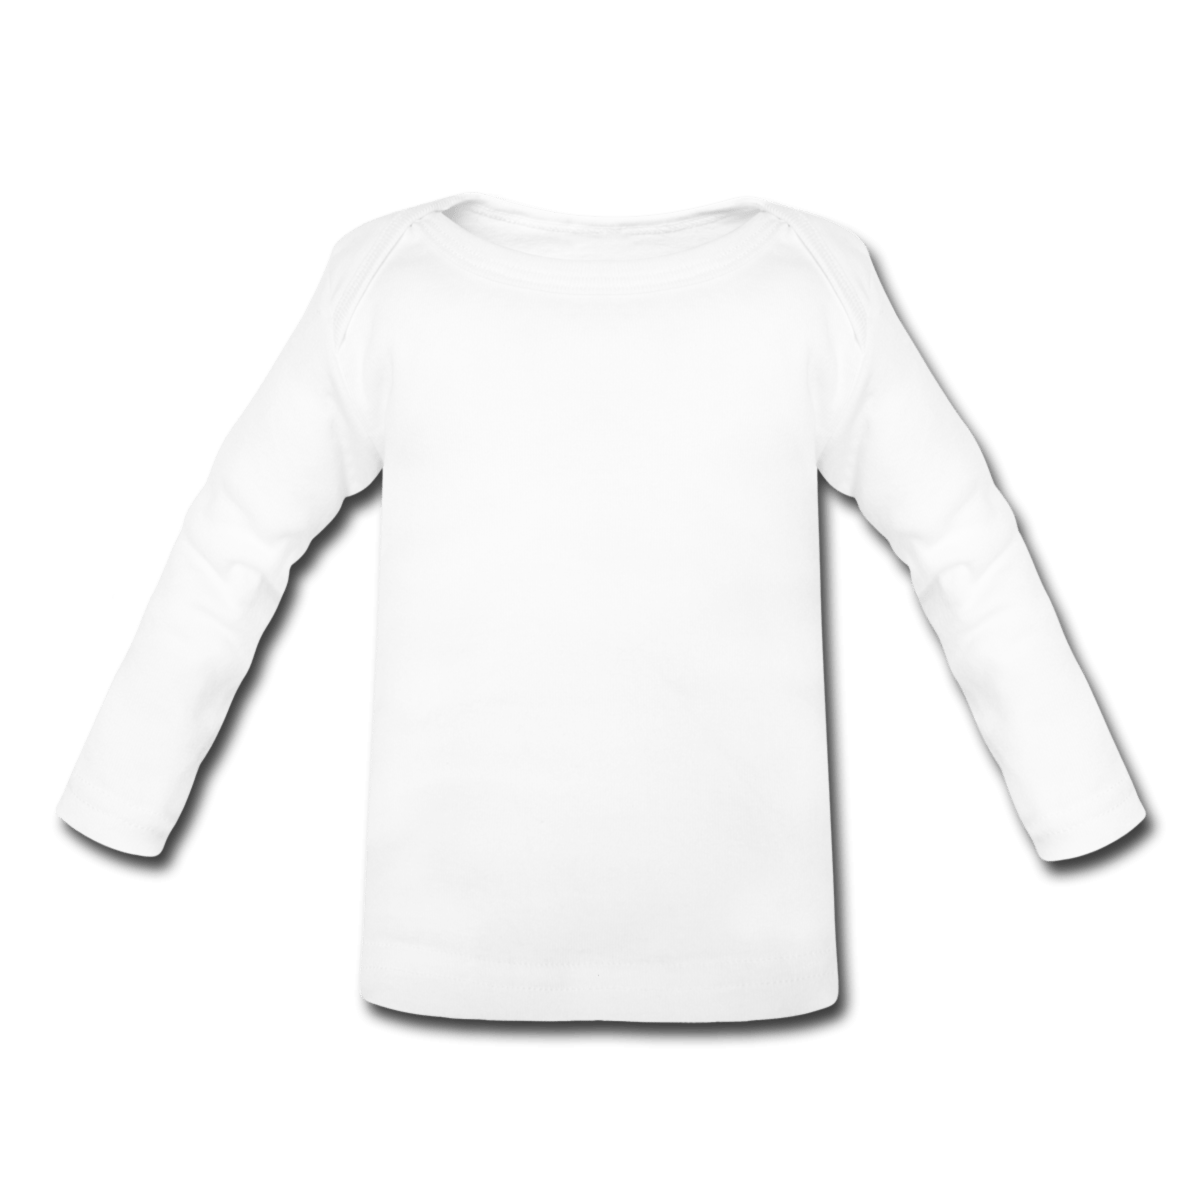 Picture Of Blank T Shirt